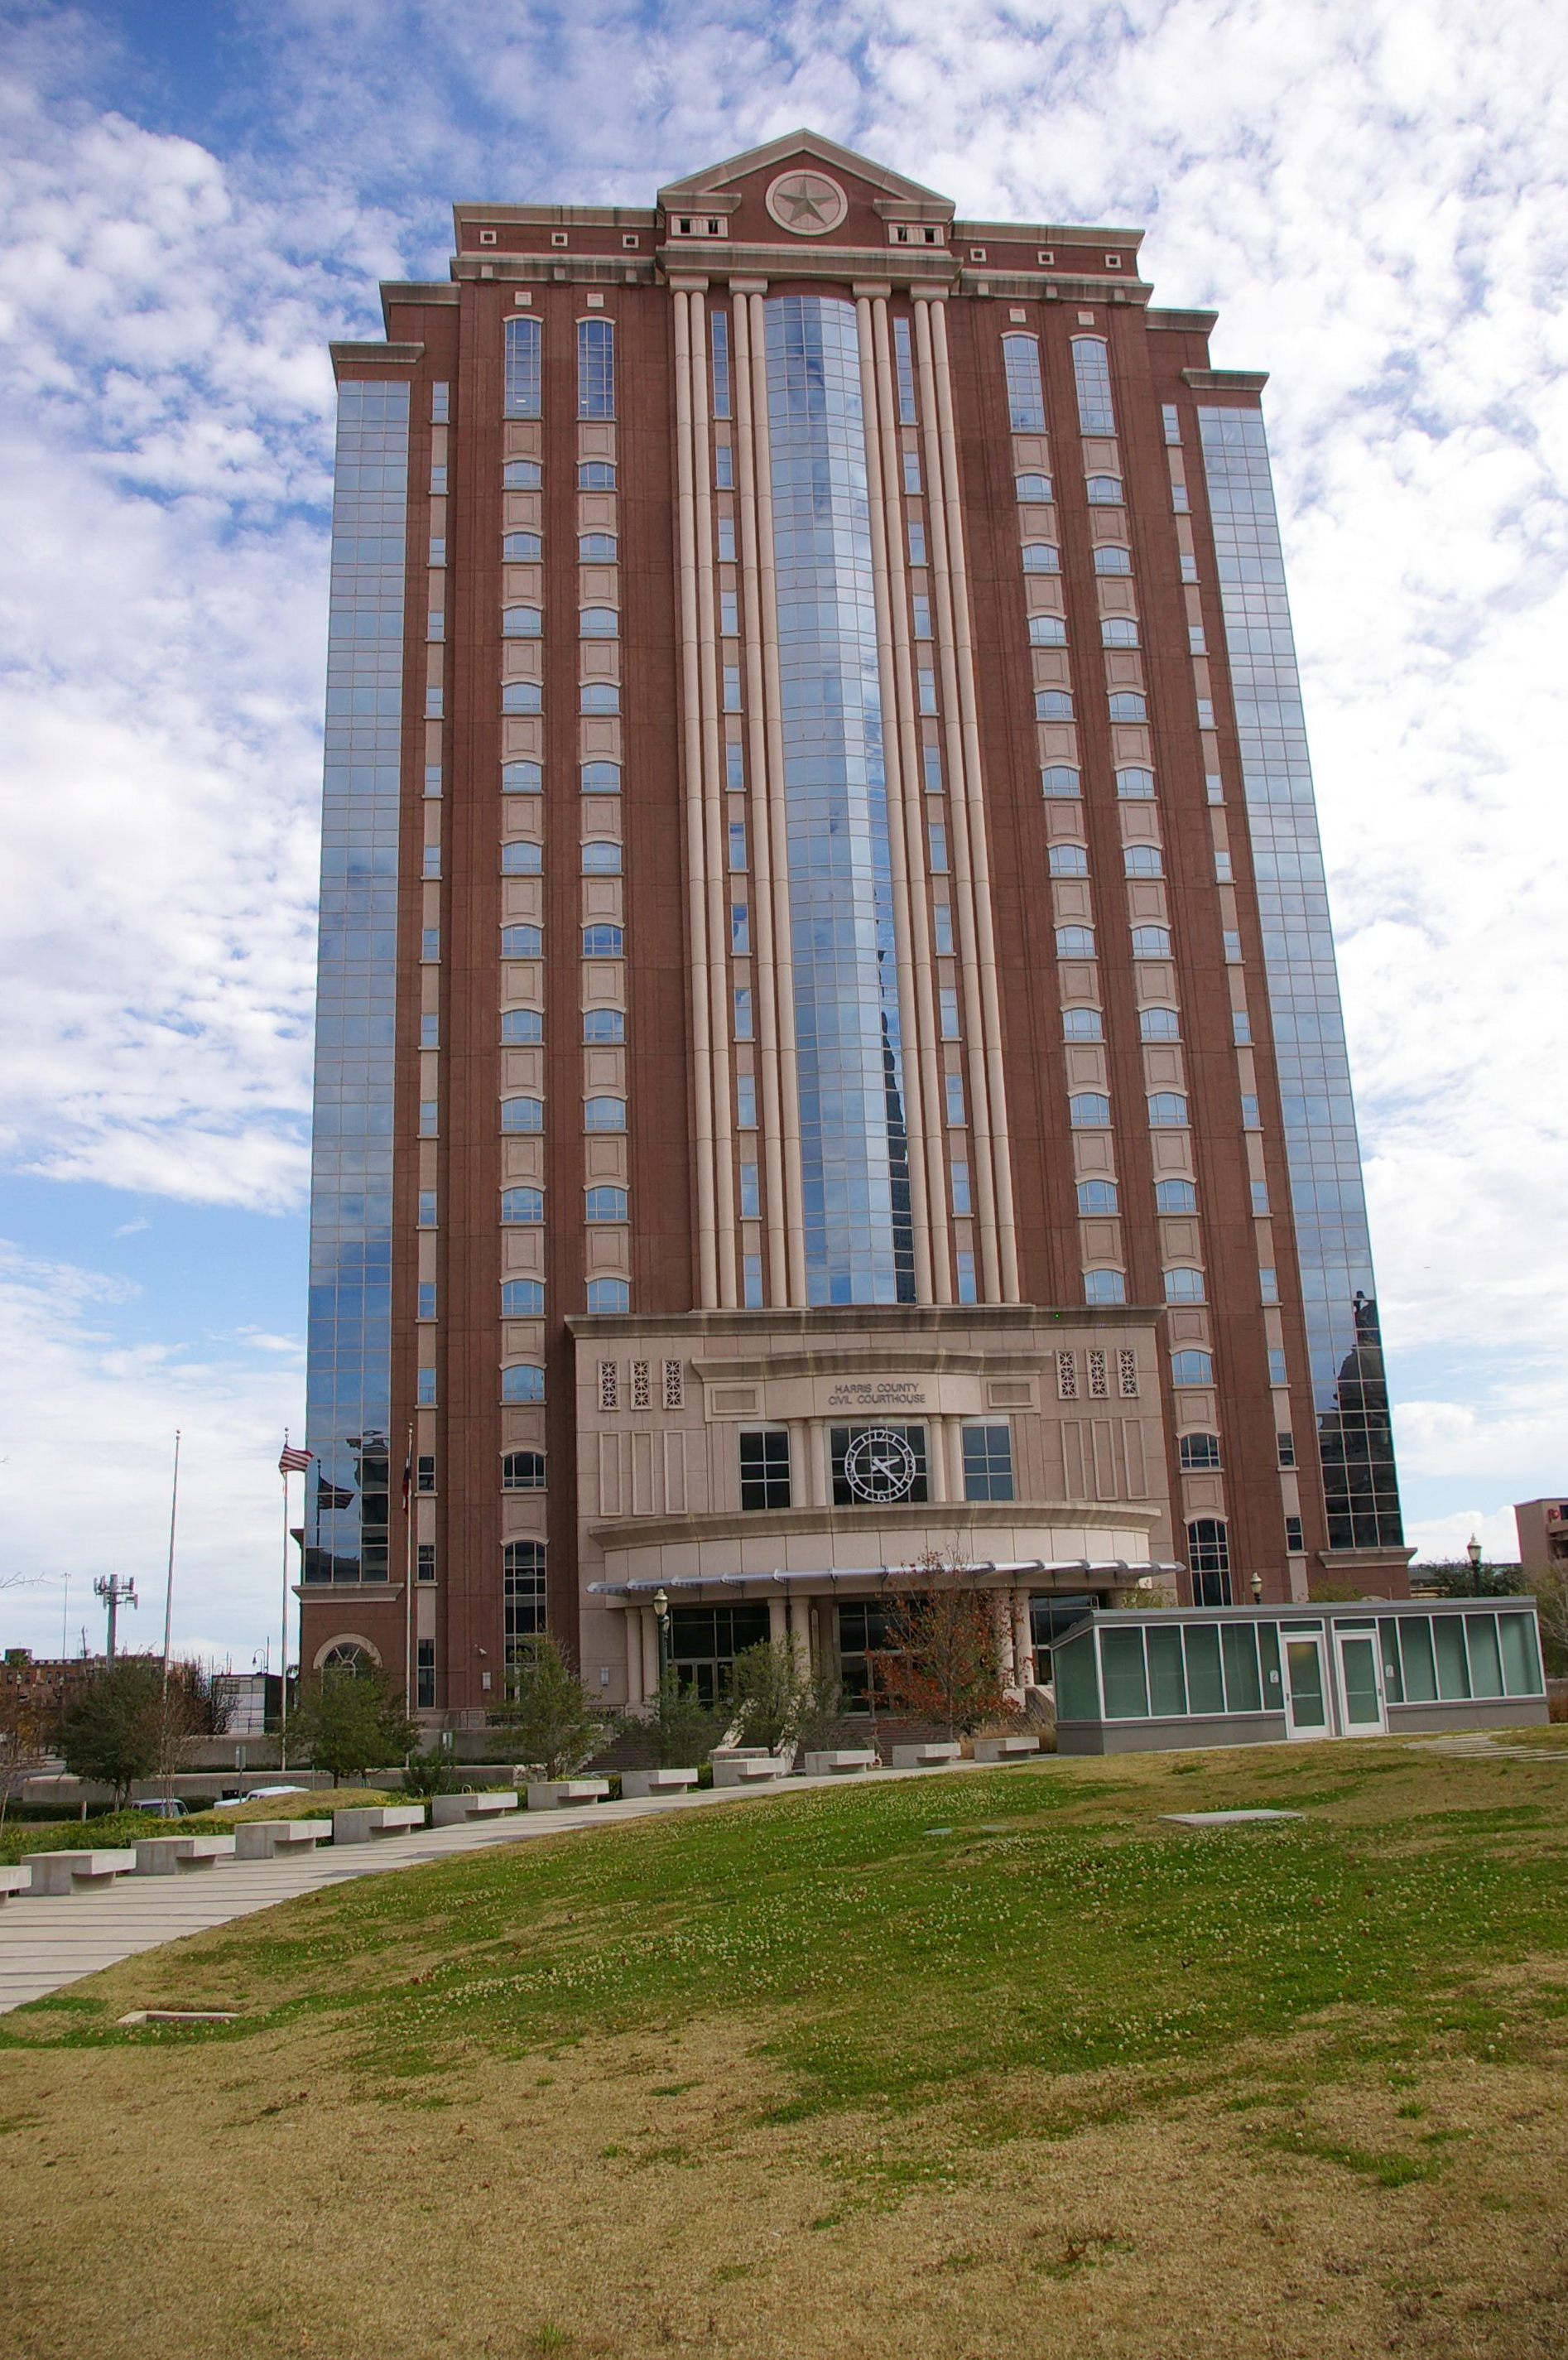 Harris County Us Courthouses